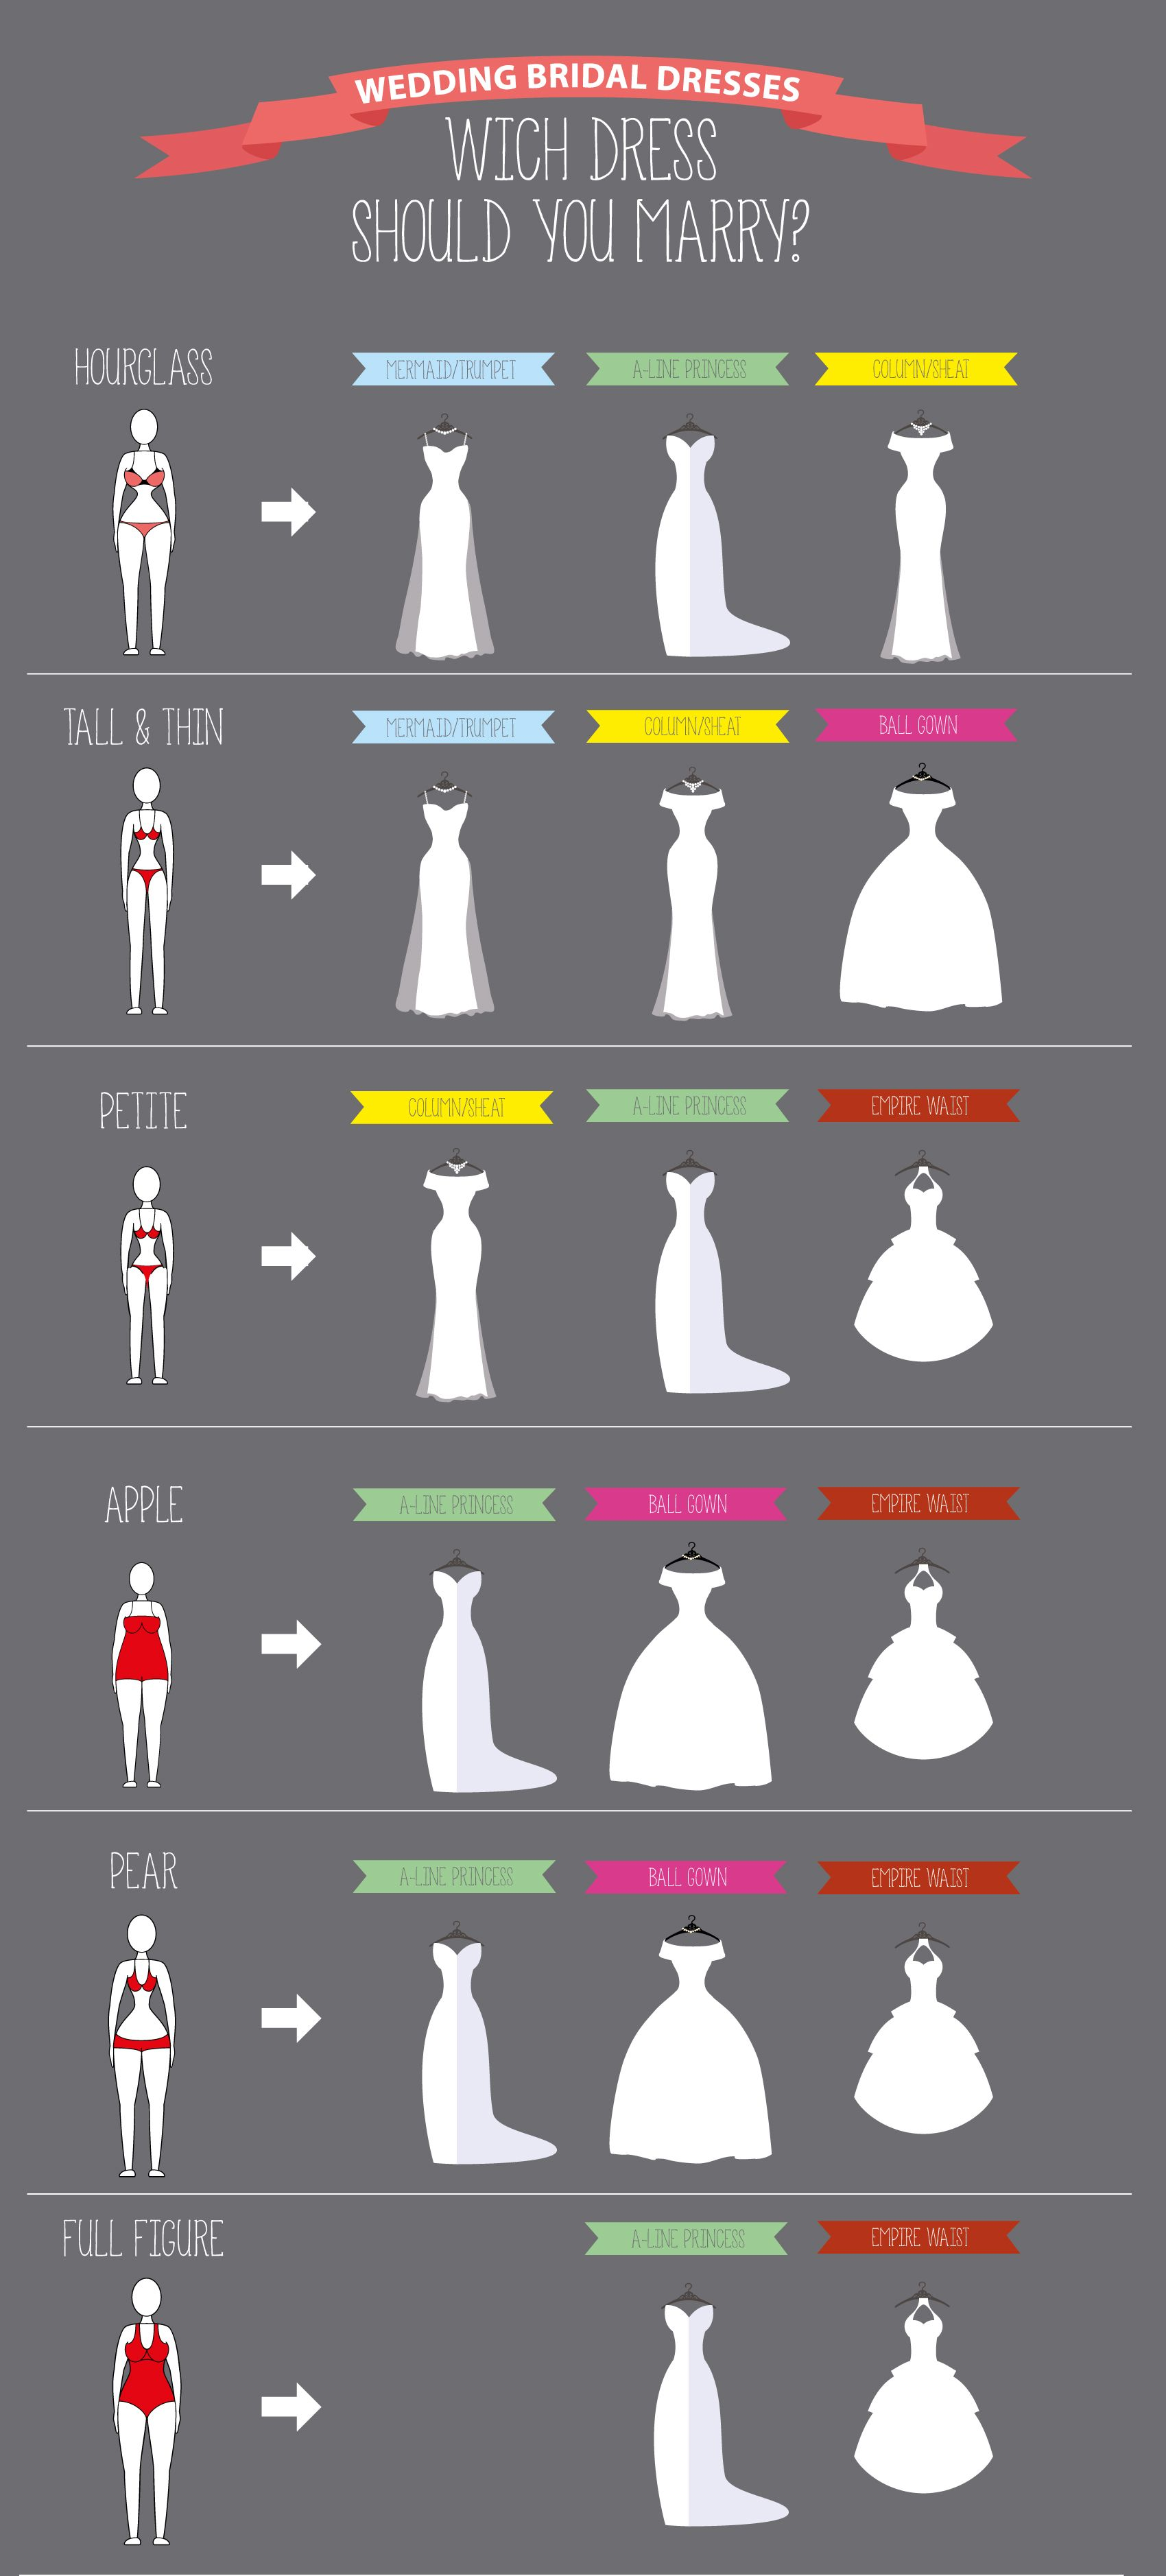 What's Your Wedding Dress Style